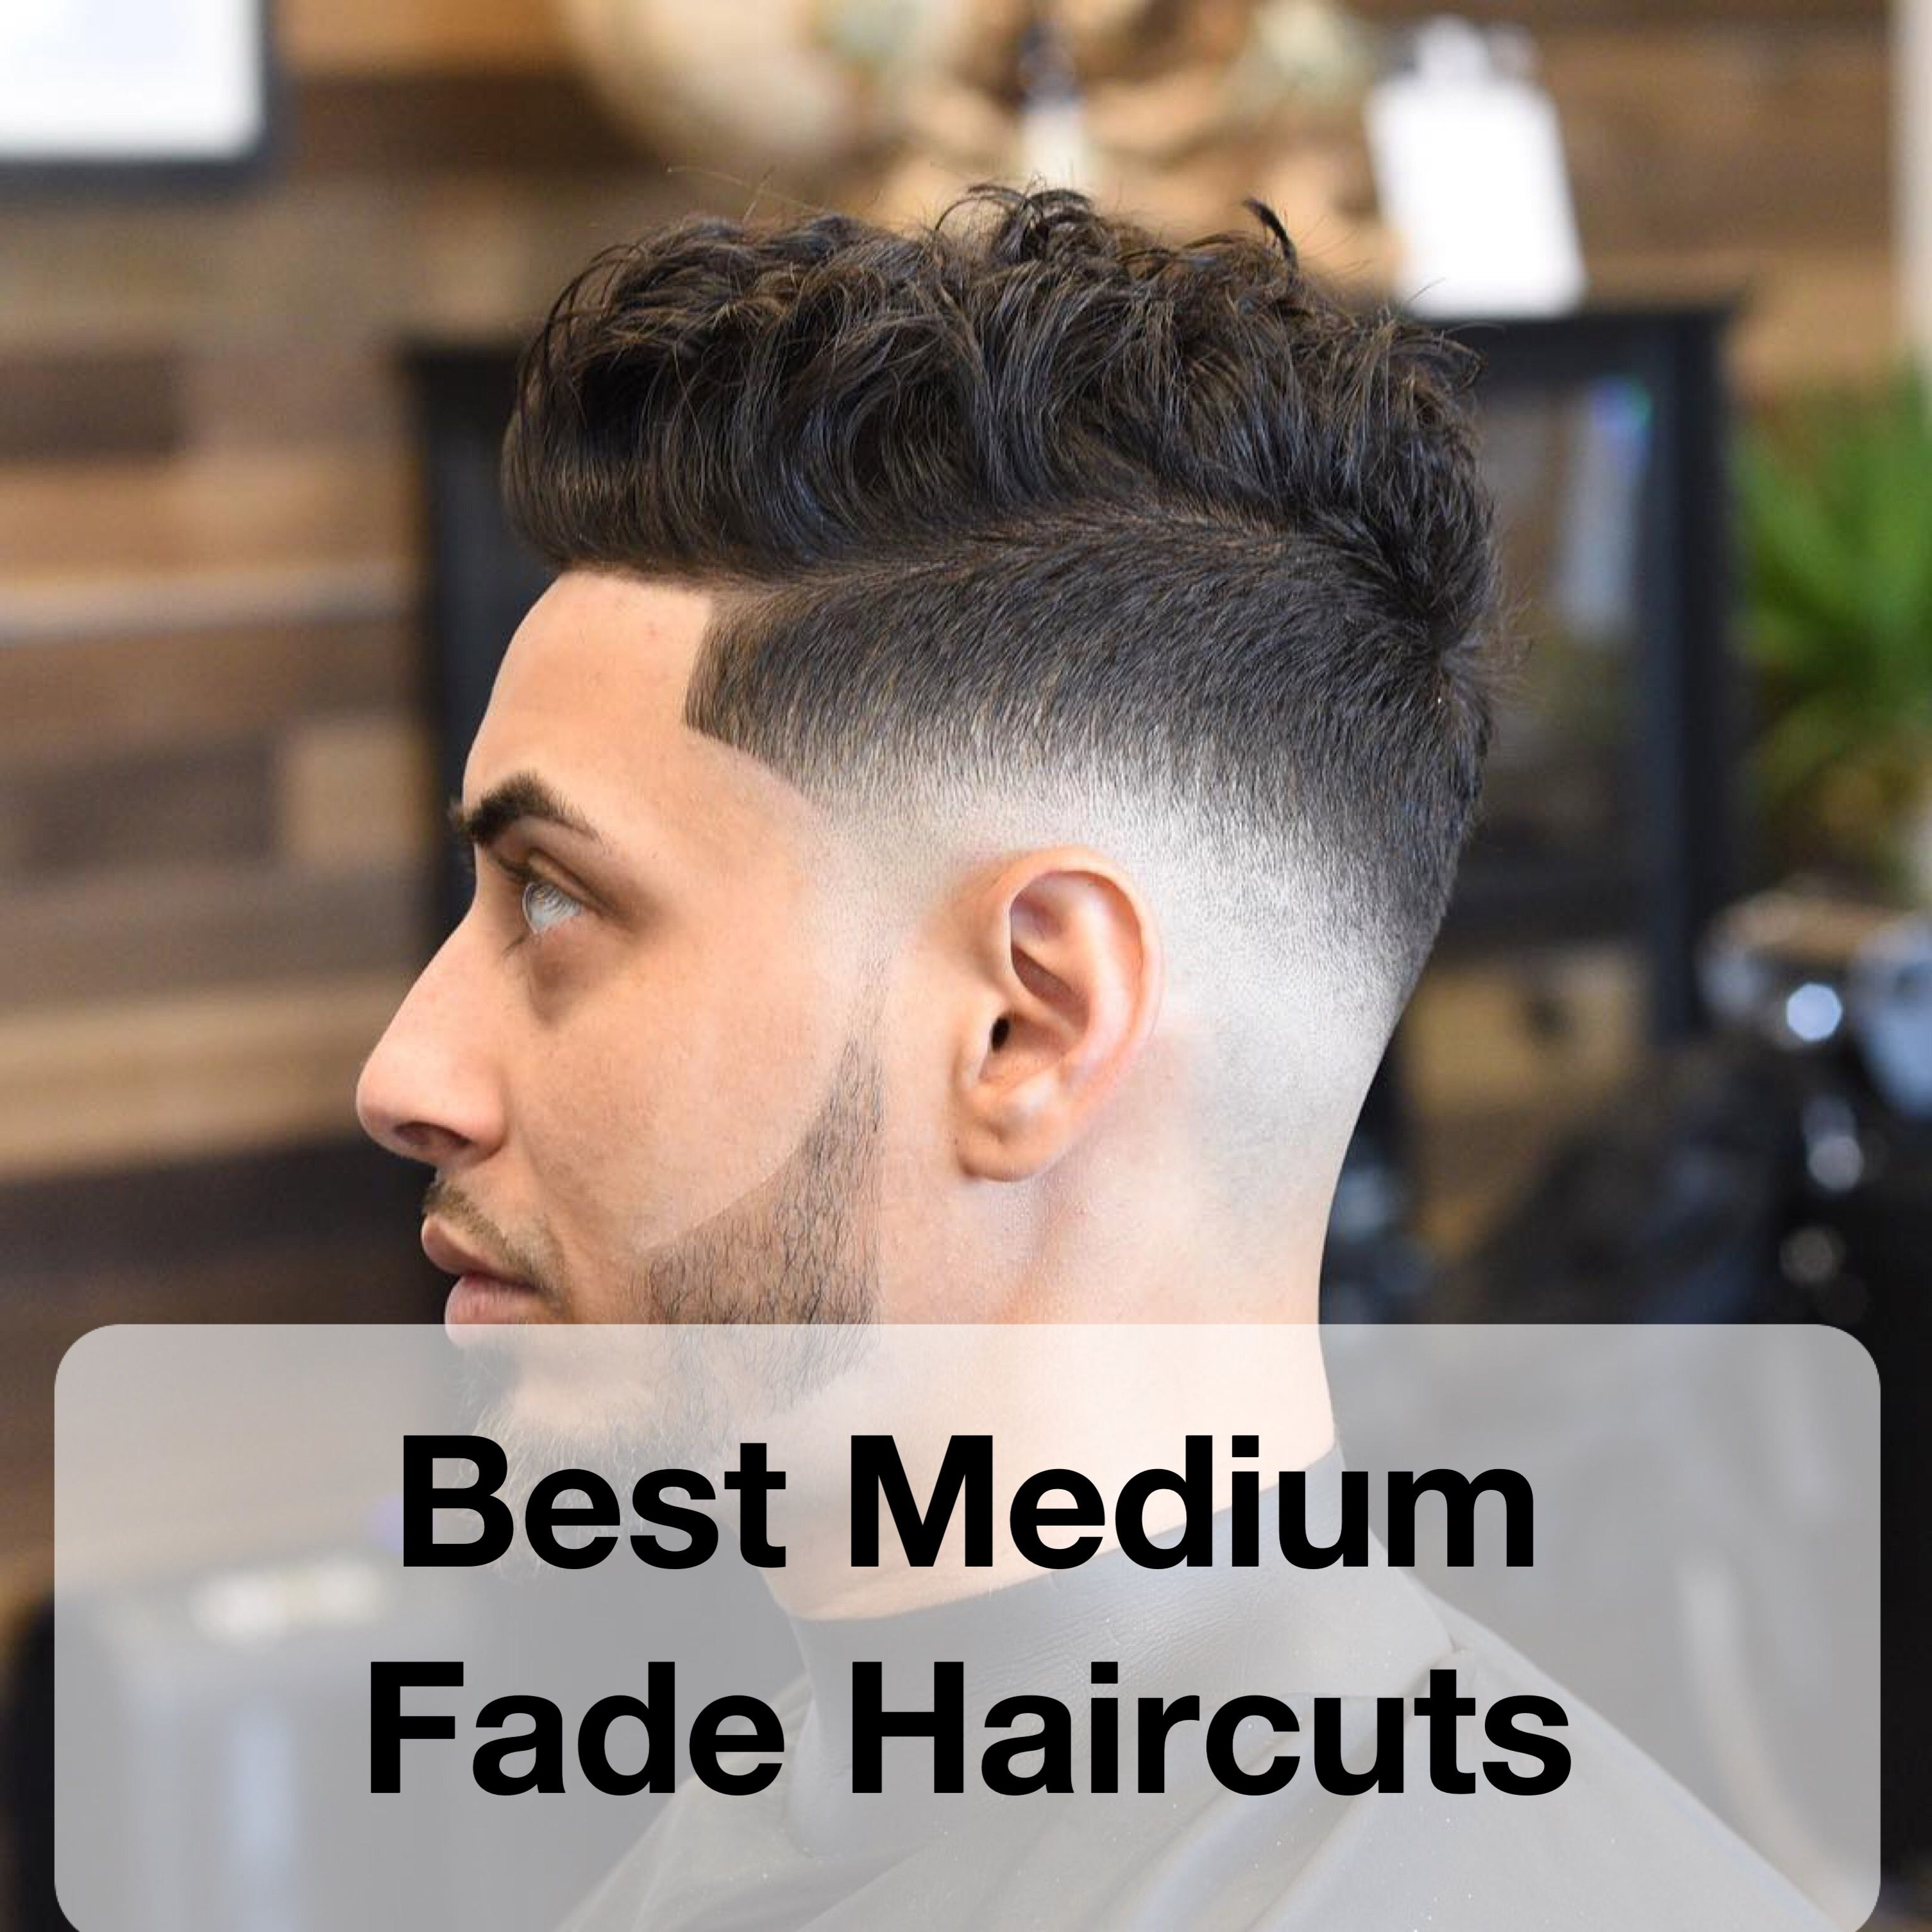 Different types of fade haircuts for men what is mid fade  best medium fade haircuts  hair u make up